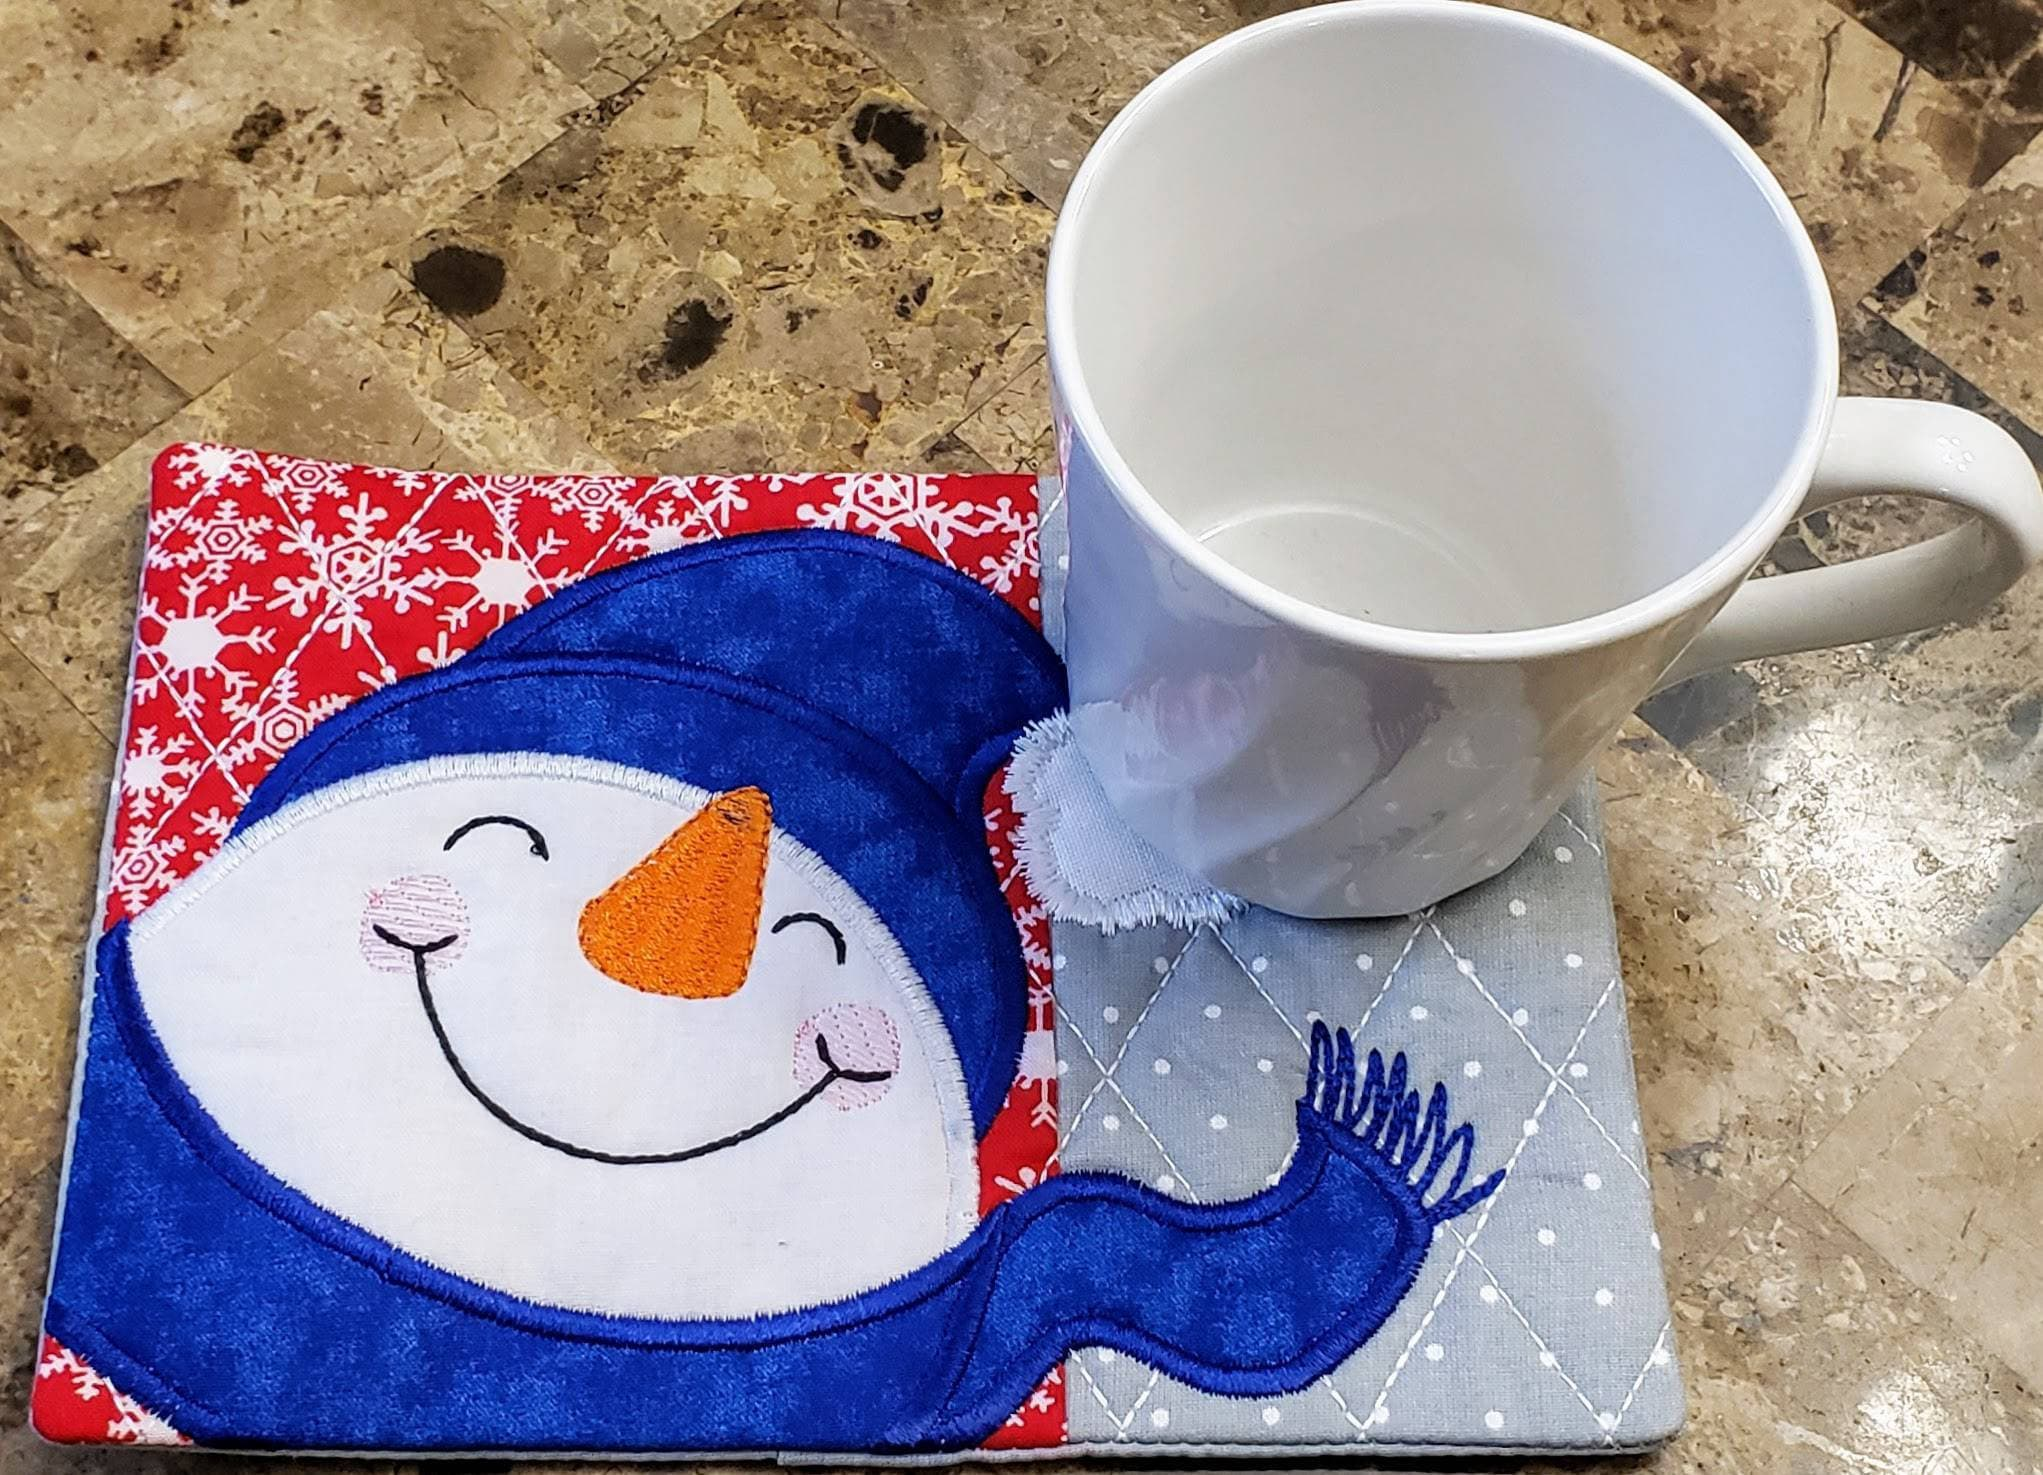 Embroidered Snowman Mug Rug Snack Mat Coaster Placemat Candle Mat Pot Holder Hostess Gift Ready To Ship